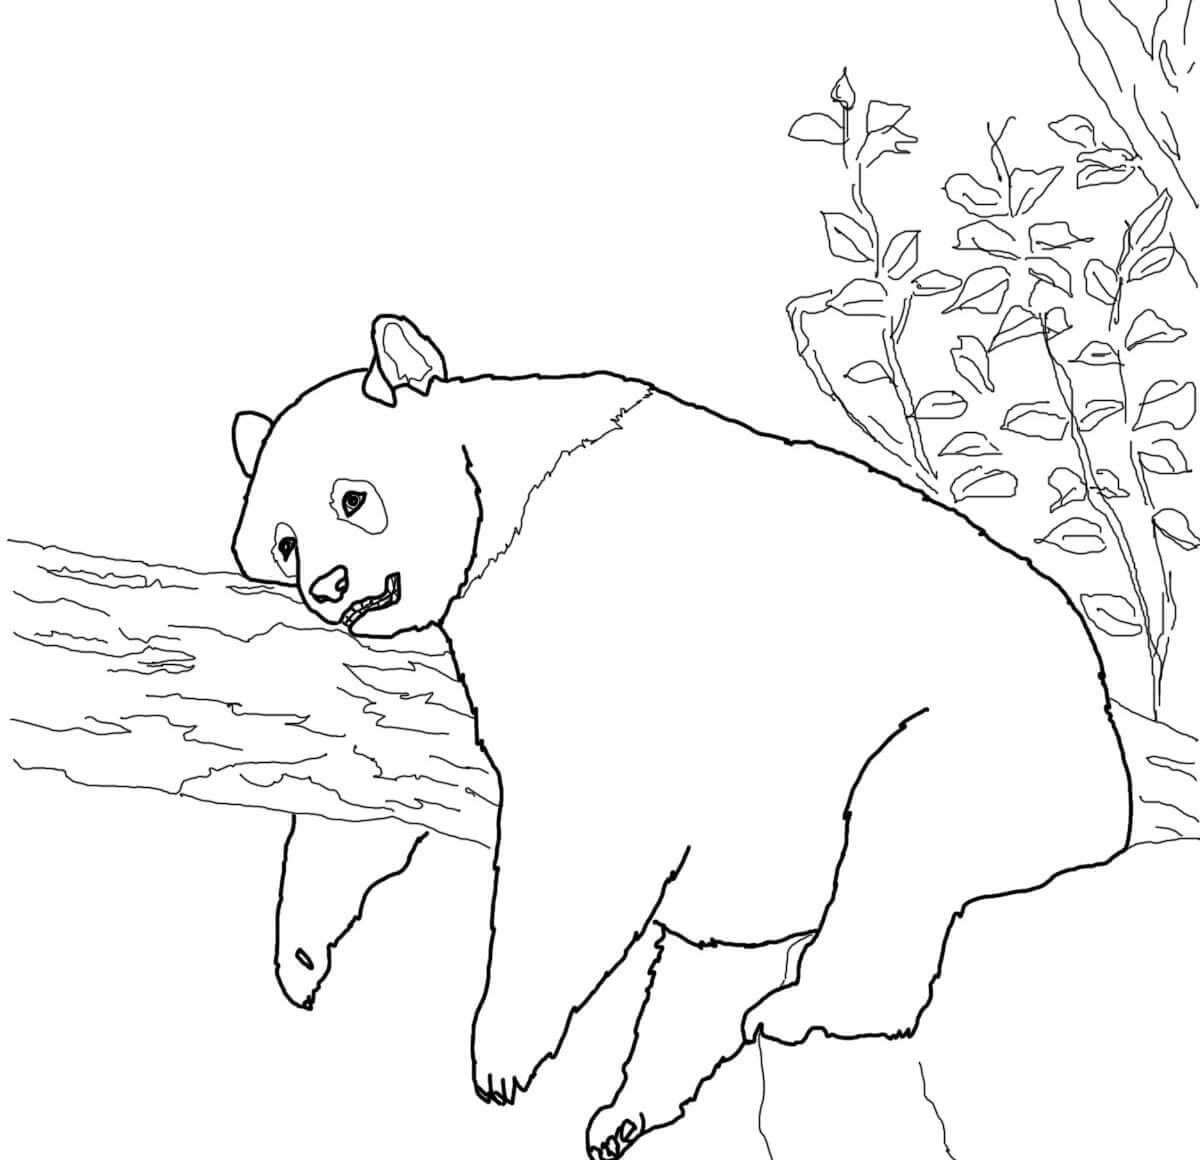 Red Panda Coloring Page - Coloring Home